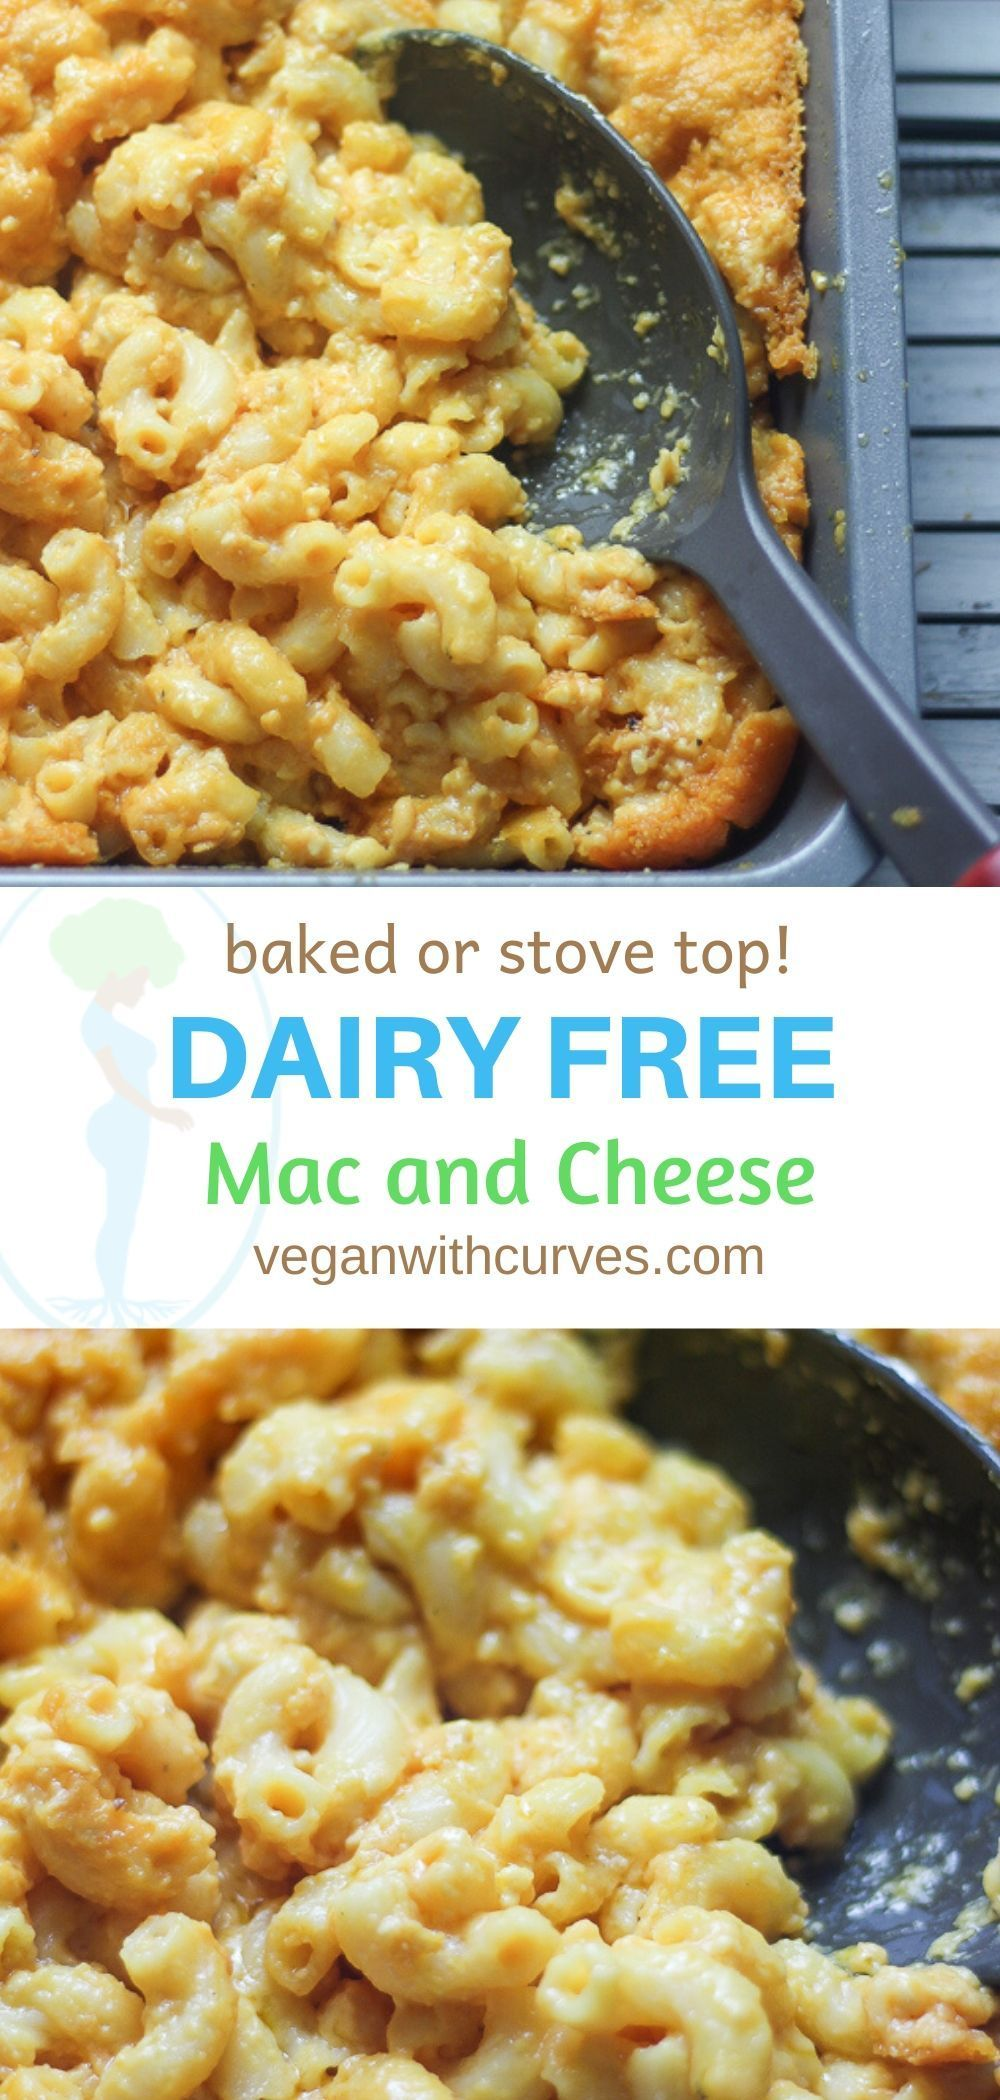 The Best Dairy Free Mac And Cheese Vegan Plus Gluten Free Recipe In 2020 Gluten Free Sides Dishes Vegan Side Dishes Dairy Free Mac And Cheese